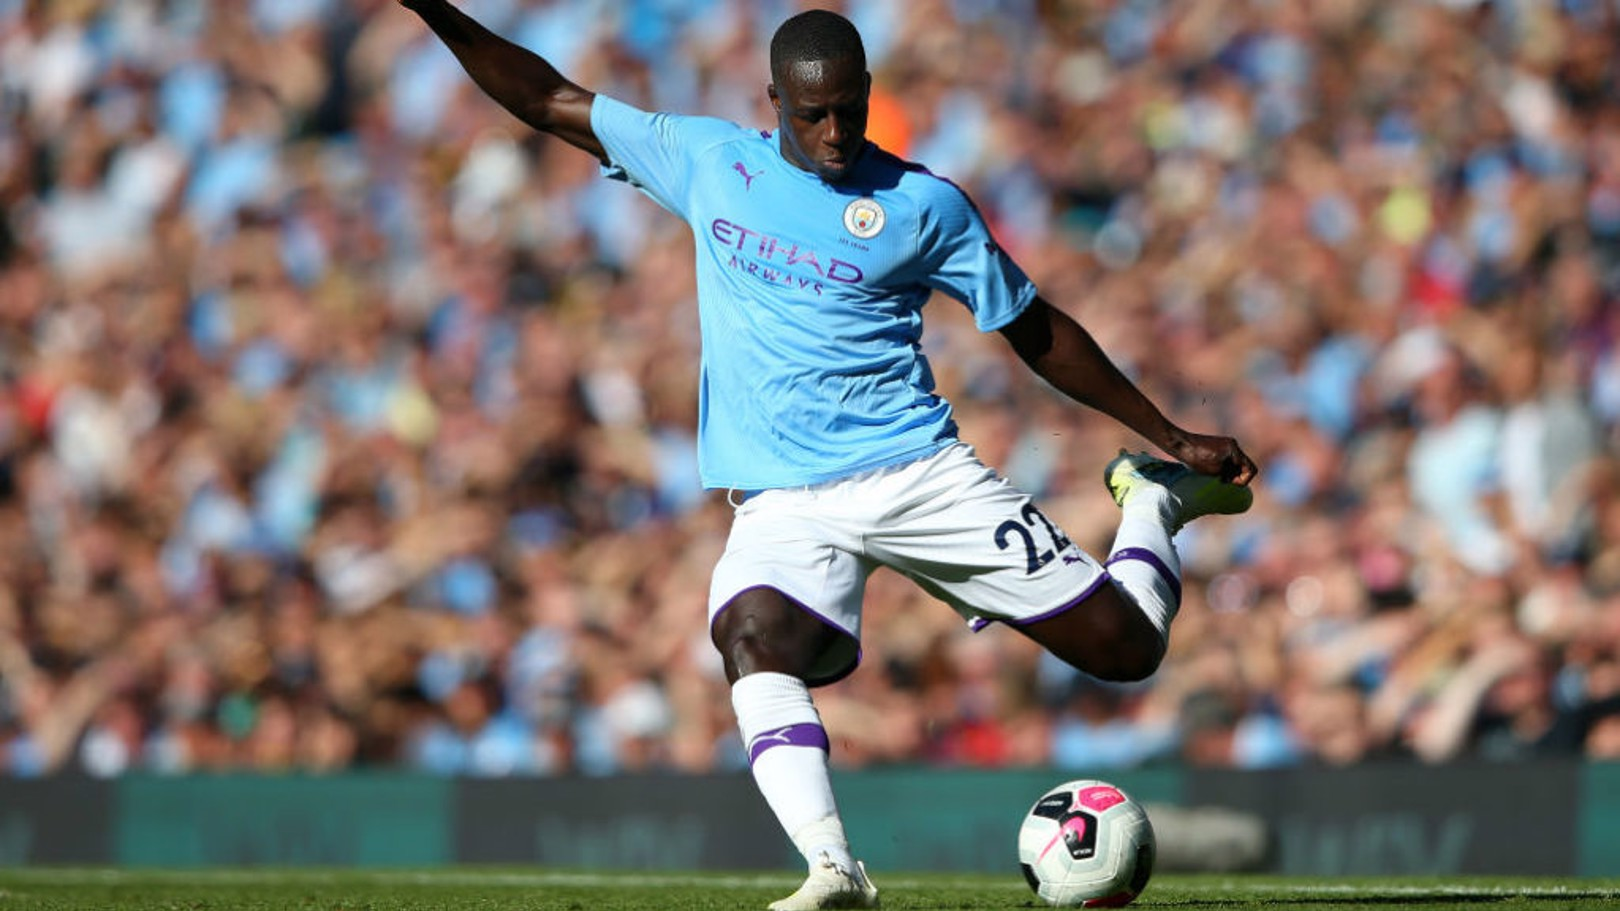 ON THE MENDY: Benjamin says he is delighted to be back after two serious injuries